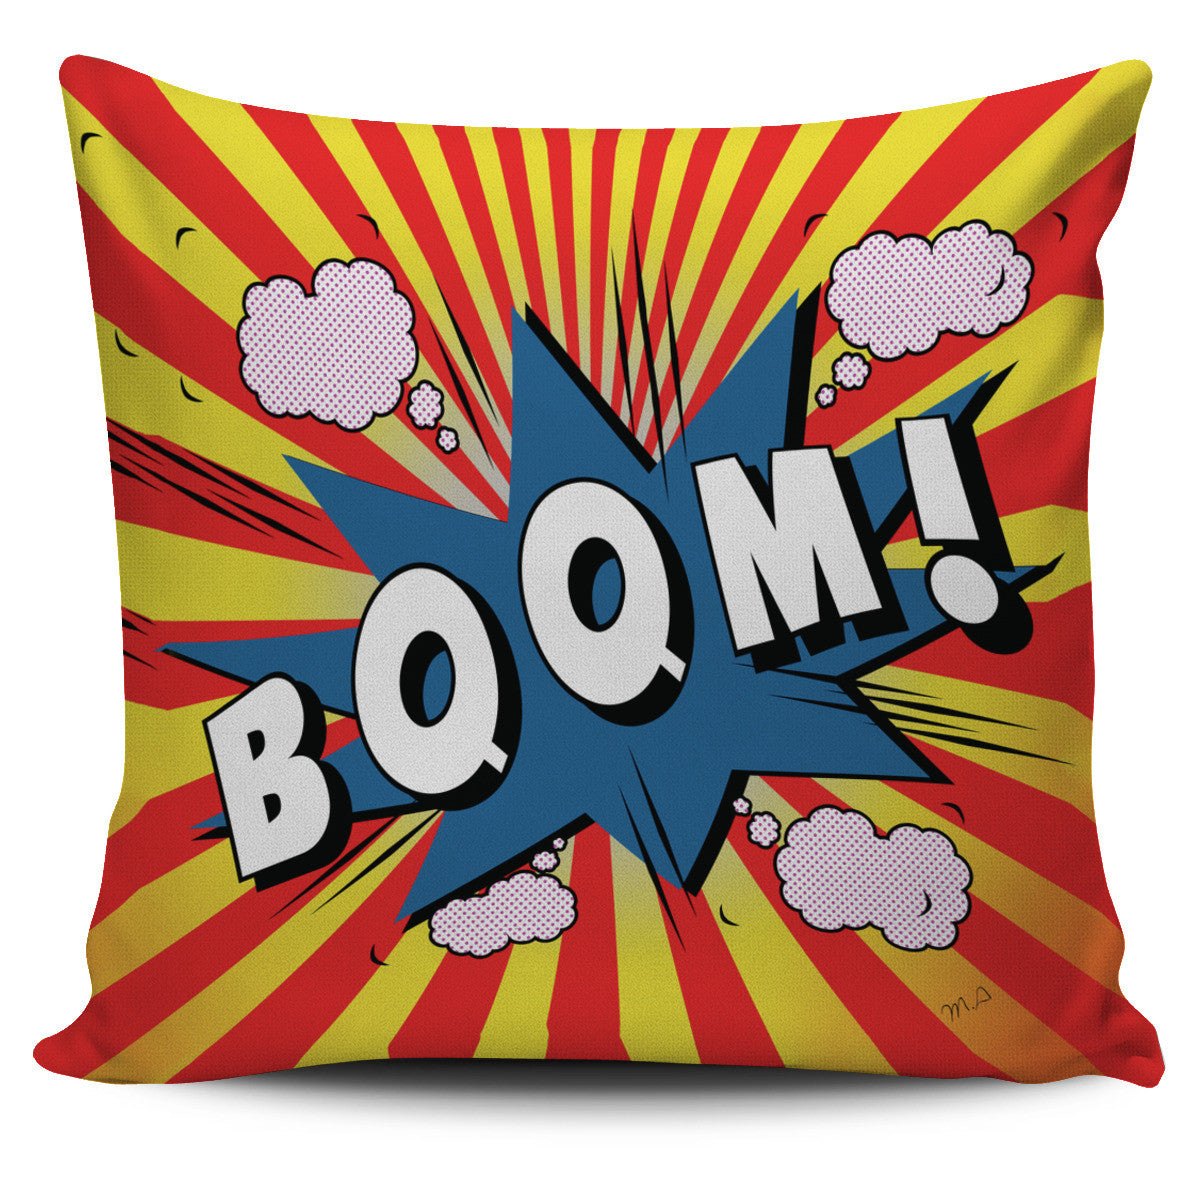 Boom Pillow Covers Offer